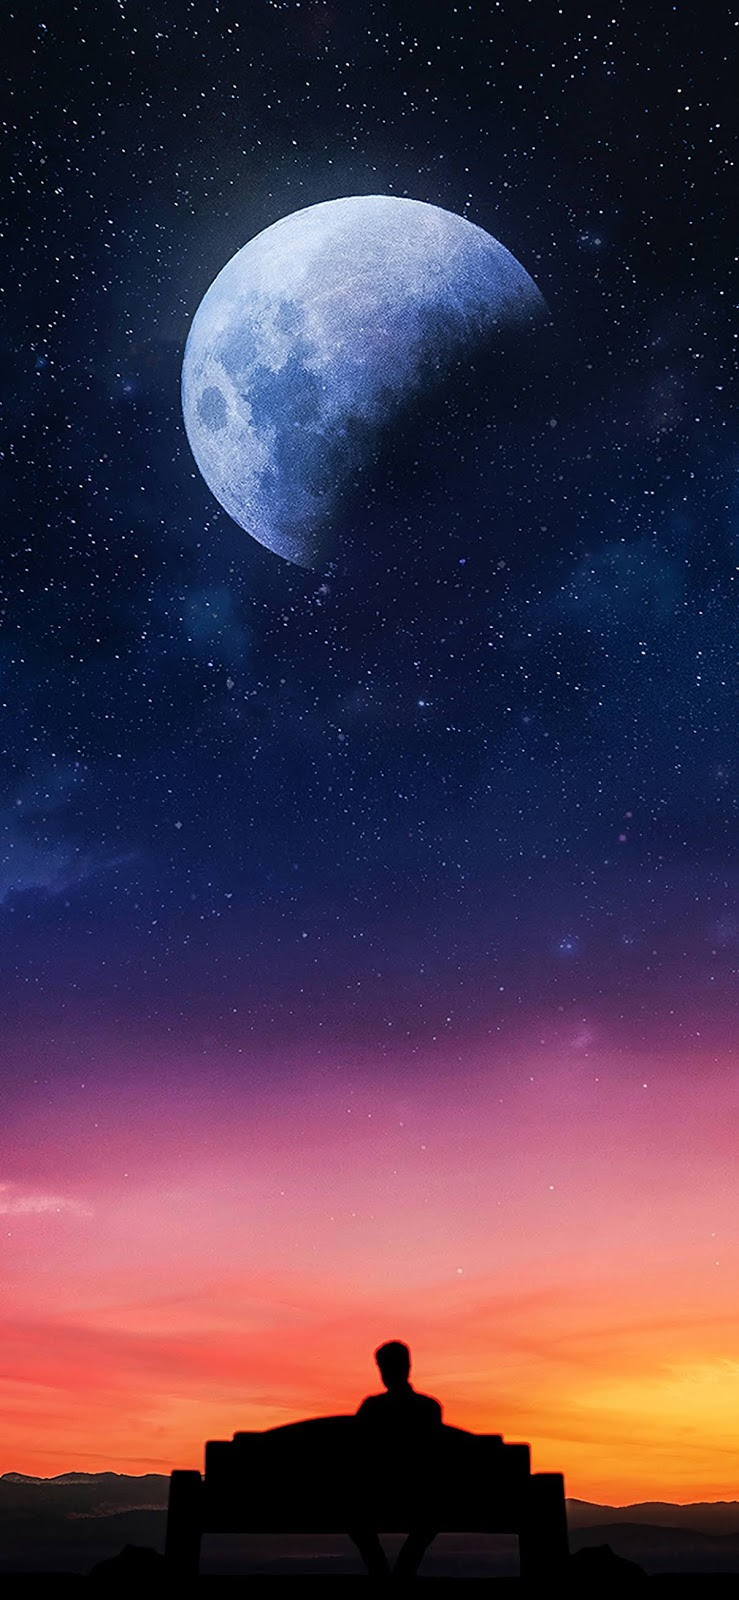 Watching the starry sky iphone xs max wallpaper